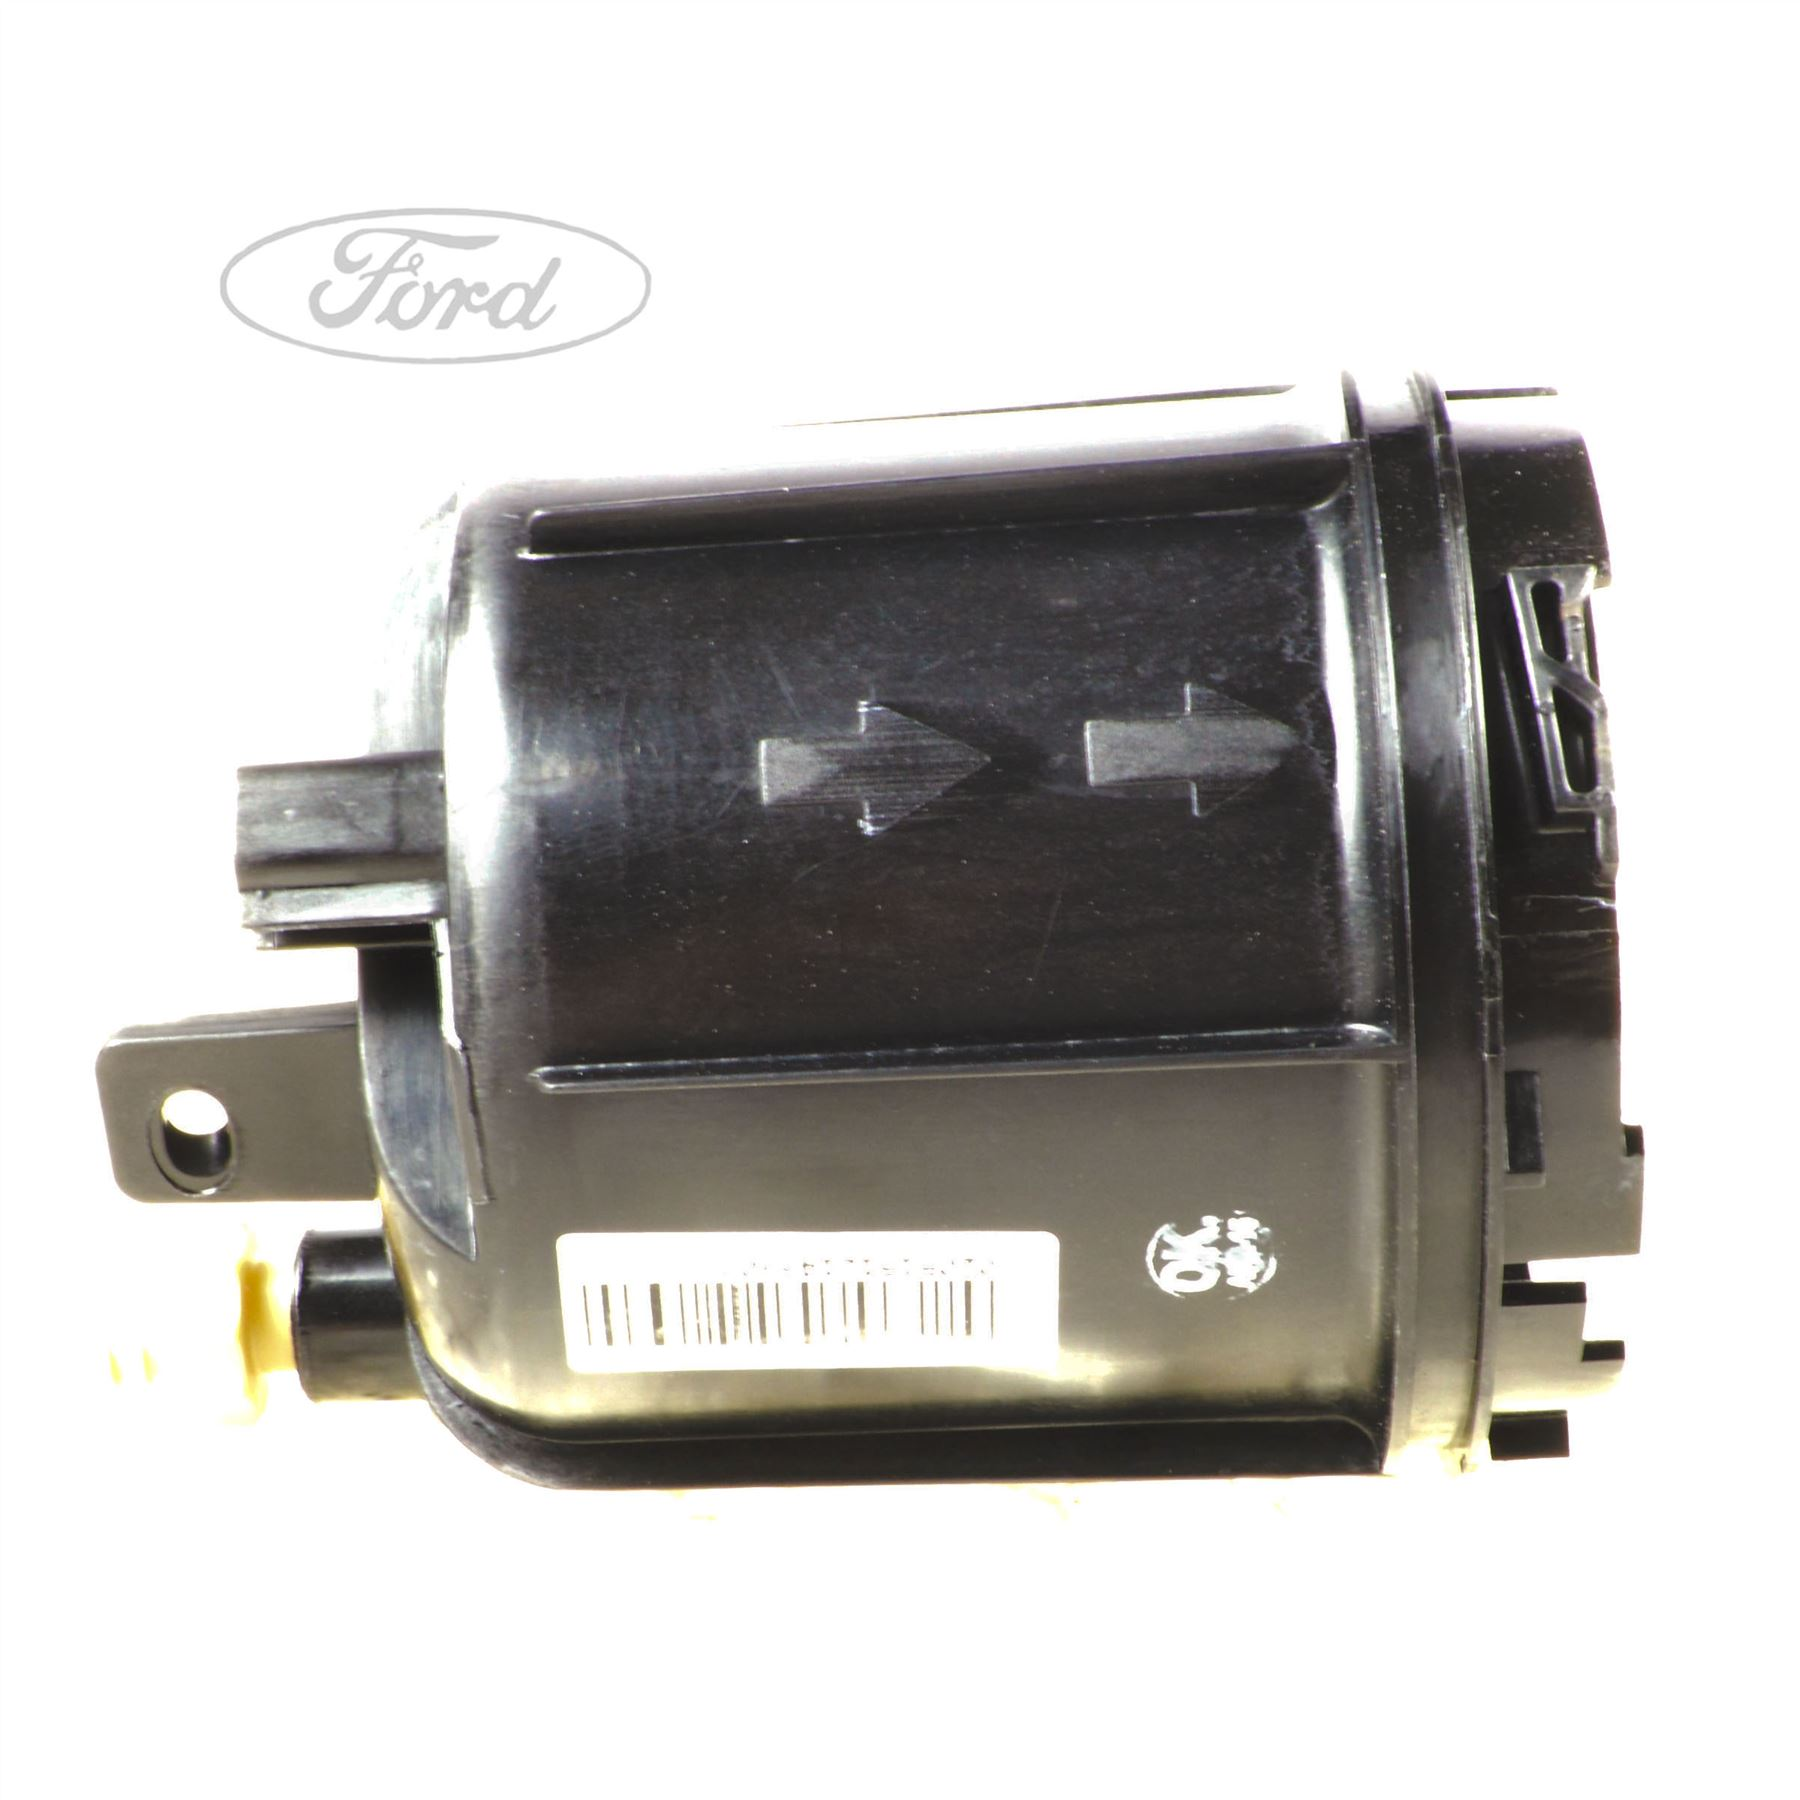 Genuine Ford Transit Mk8 Tourneo 22 Tdci Diesel Fuel Filter Housing Housings Aftermarket 1781617